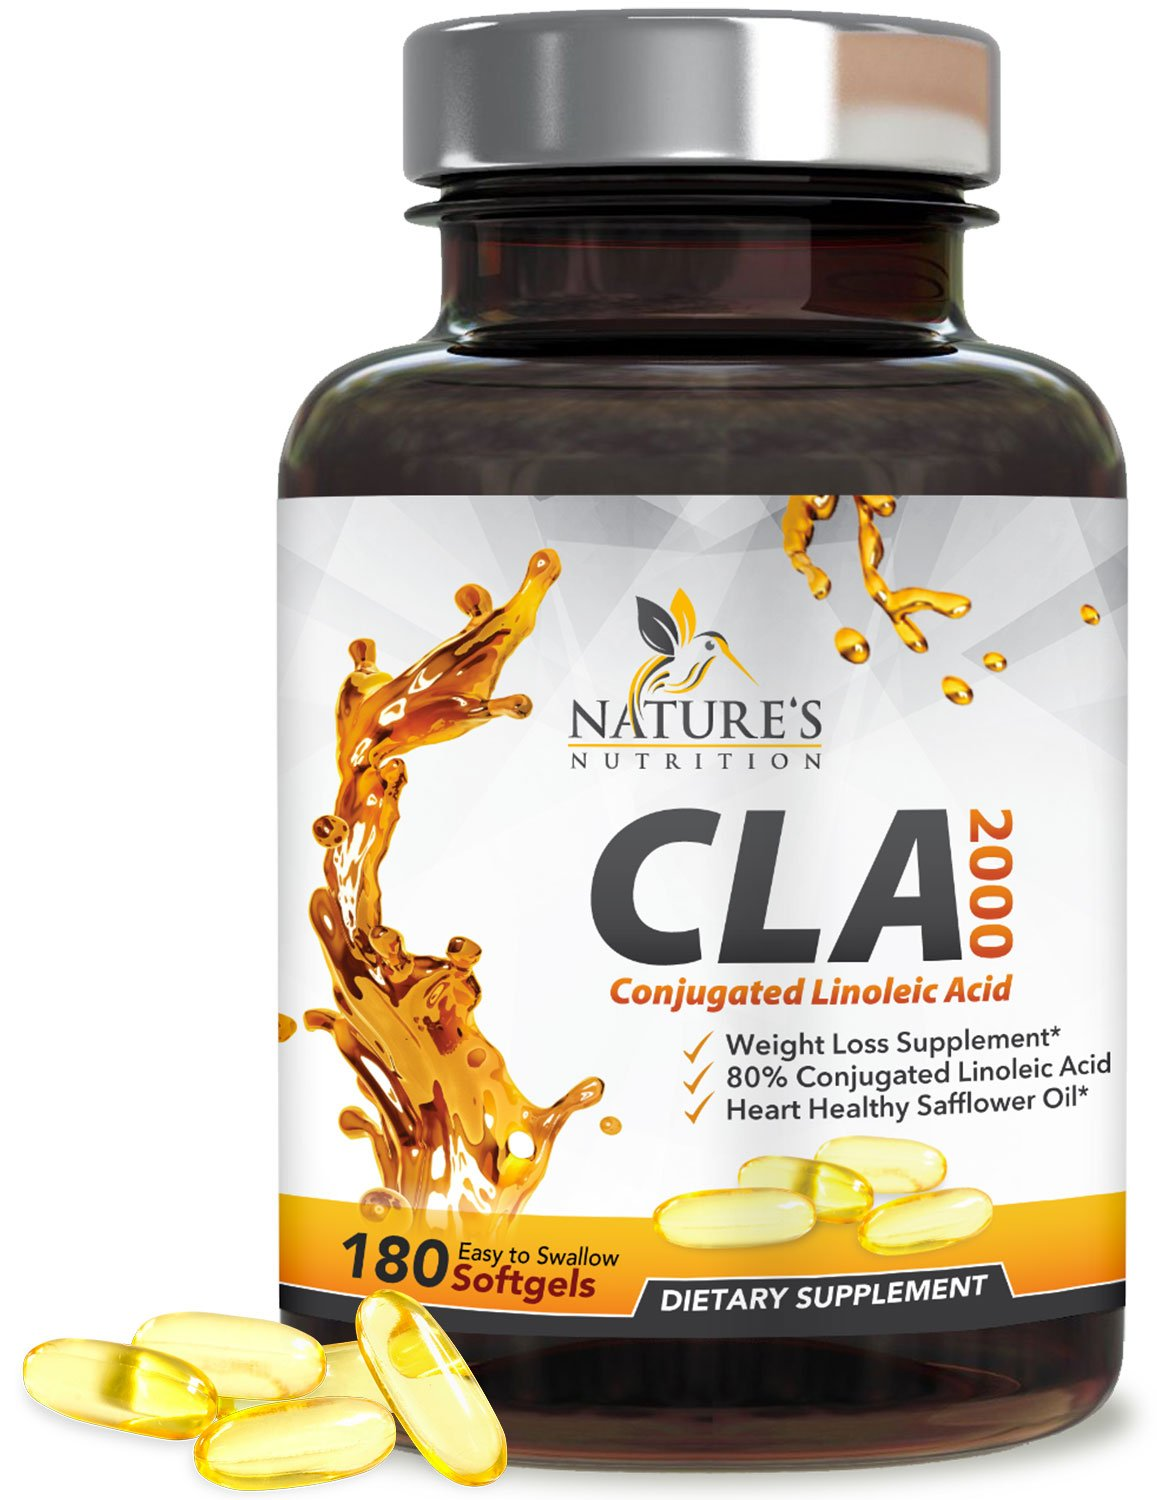 Max Potency CLA Supplements Natural Weight Loss 2000mg - Safflower Oil Conjugated Linoleic Acid Pills, Stimulant Free Belly Fat Burner & Lean Muscle Builder for Men & Women, Non-GMO - 180 Softgels